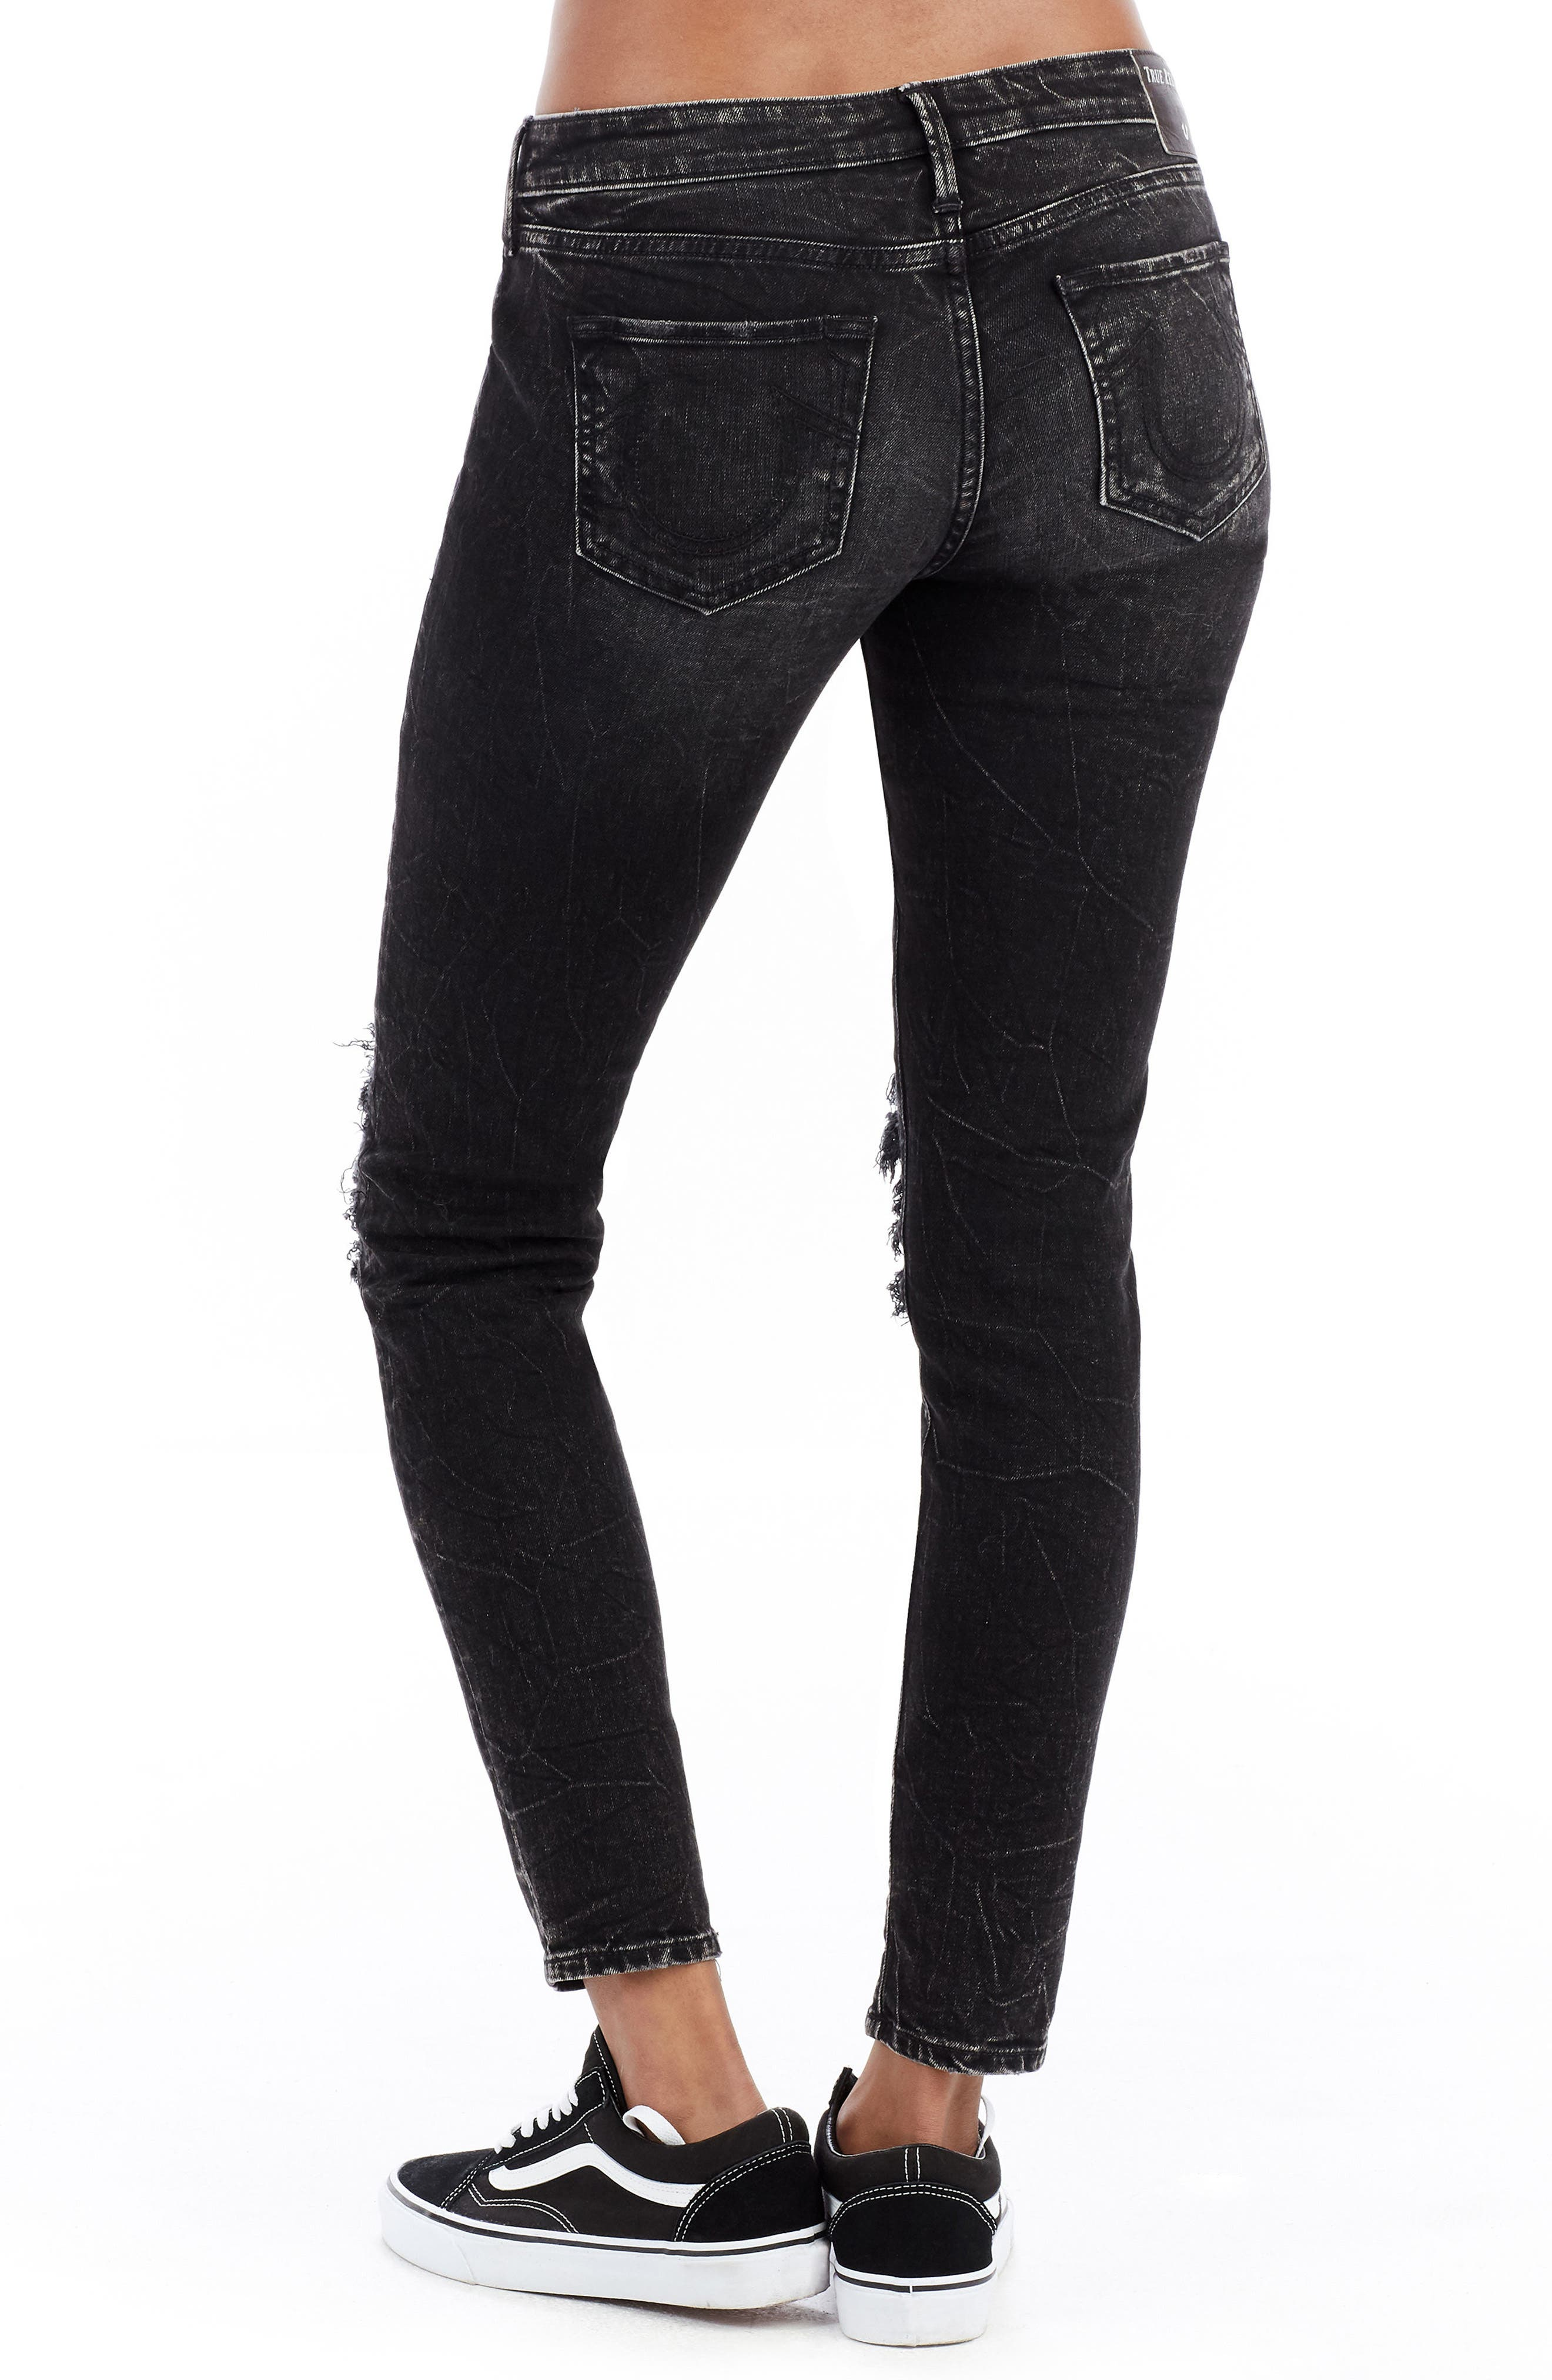 Halle Ankle Skinny Jeans,                             Alternate thumbnail 2, color,                             001